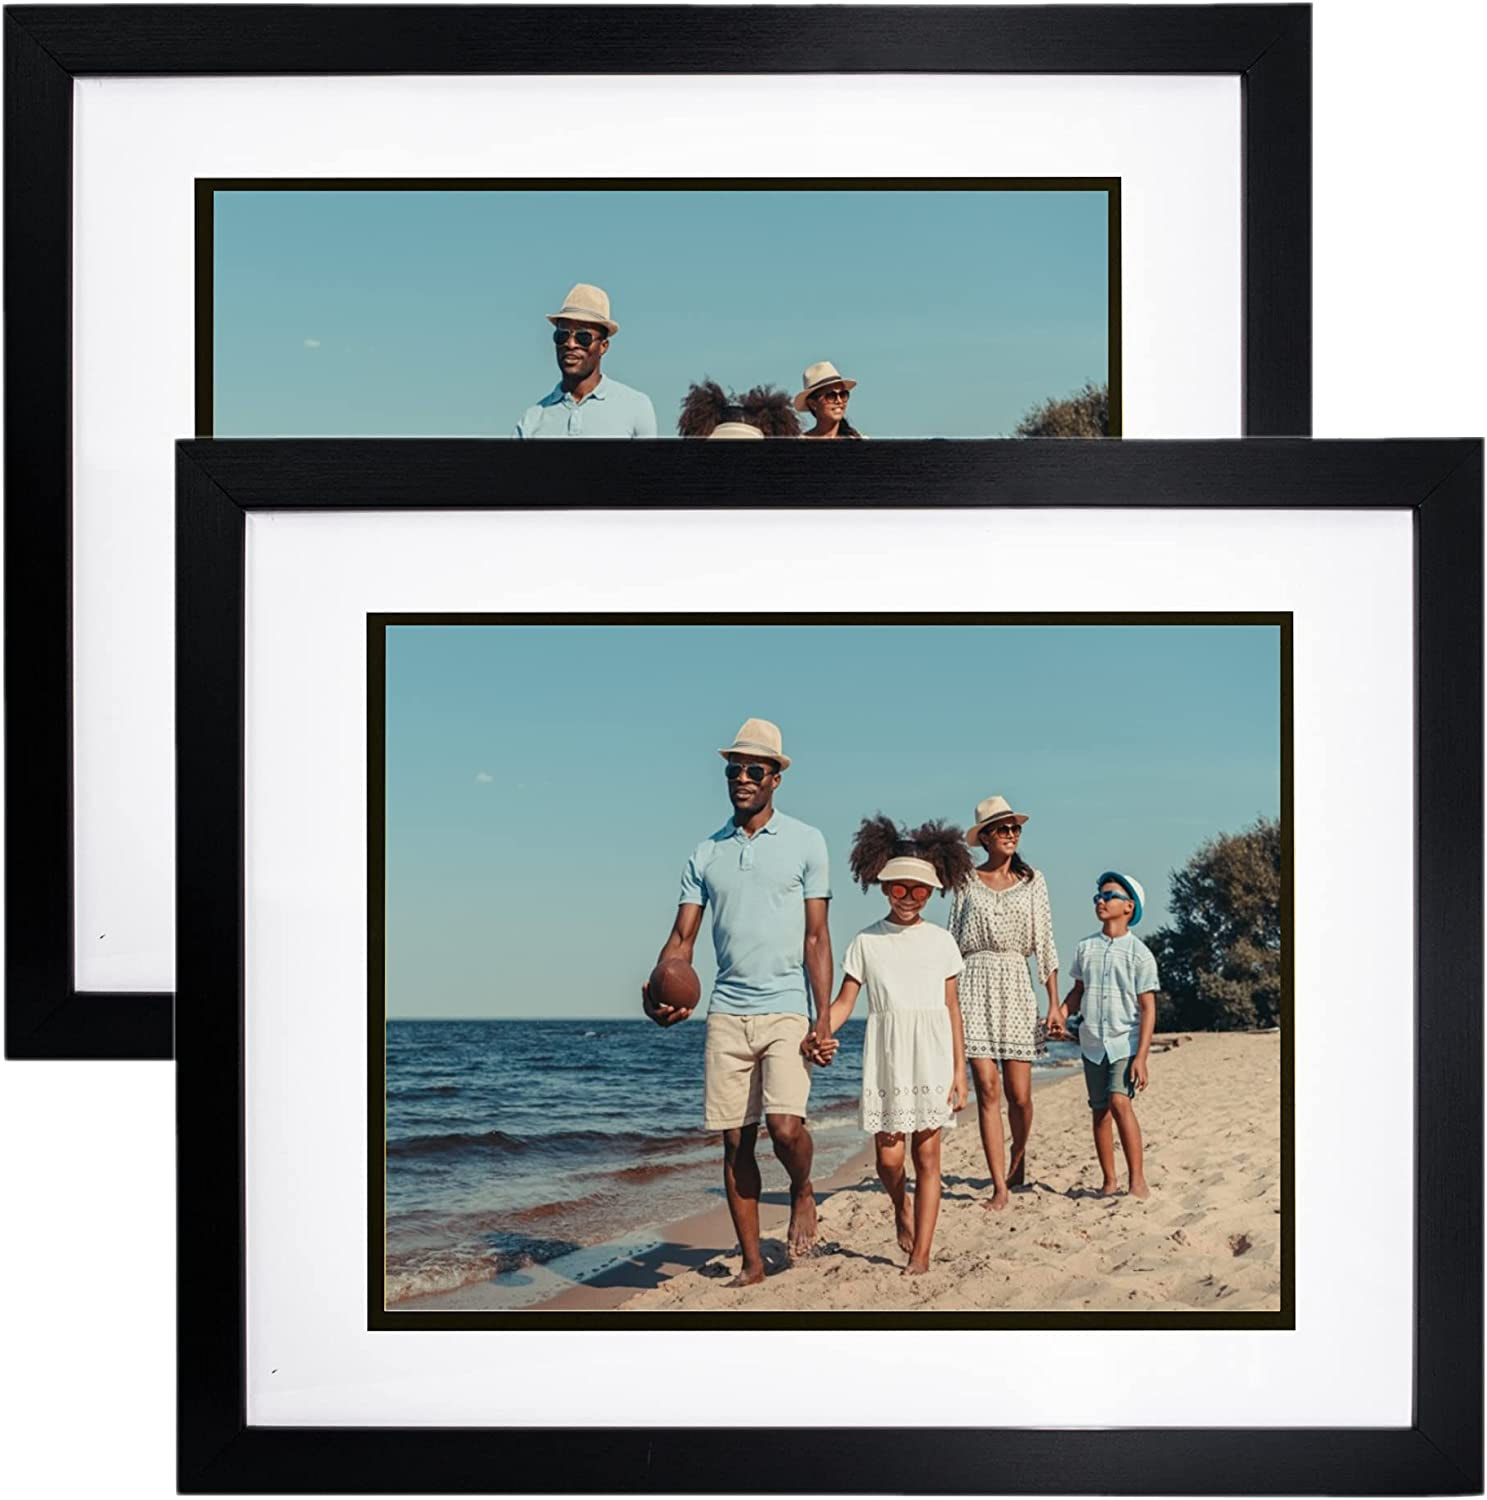 GraduatePro 11x14 Document Max 87% OFF Photo online shop Wood for Pictures 8.5x11 Frame